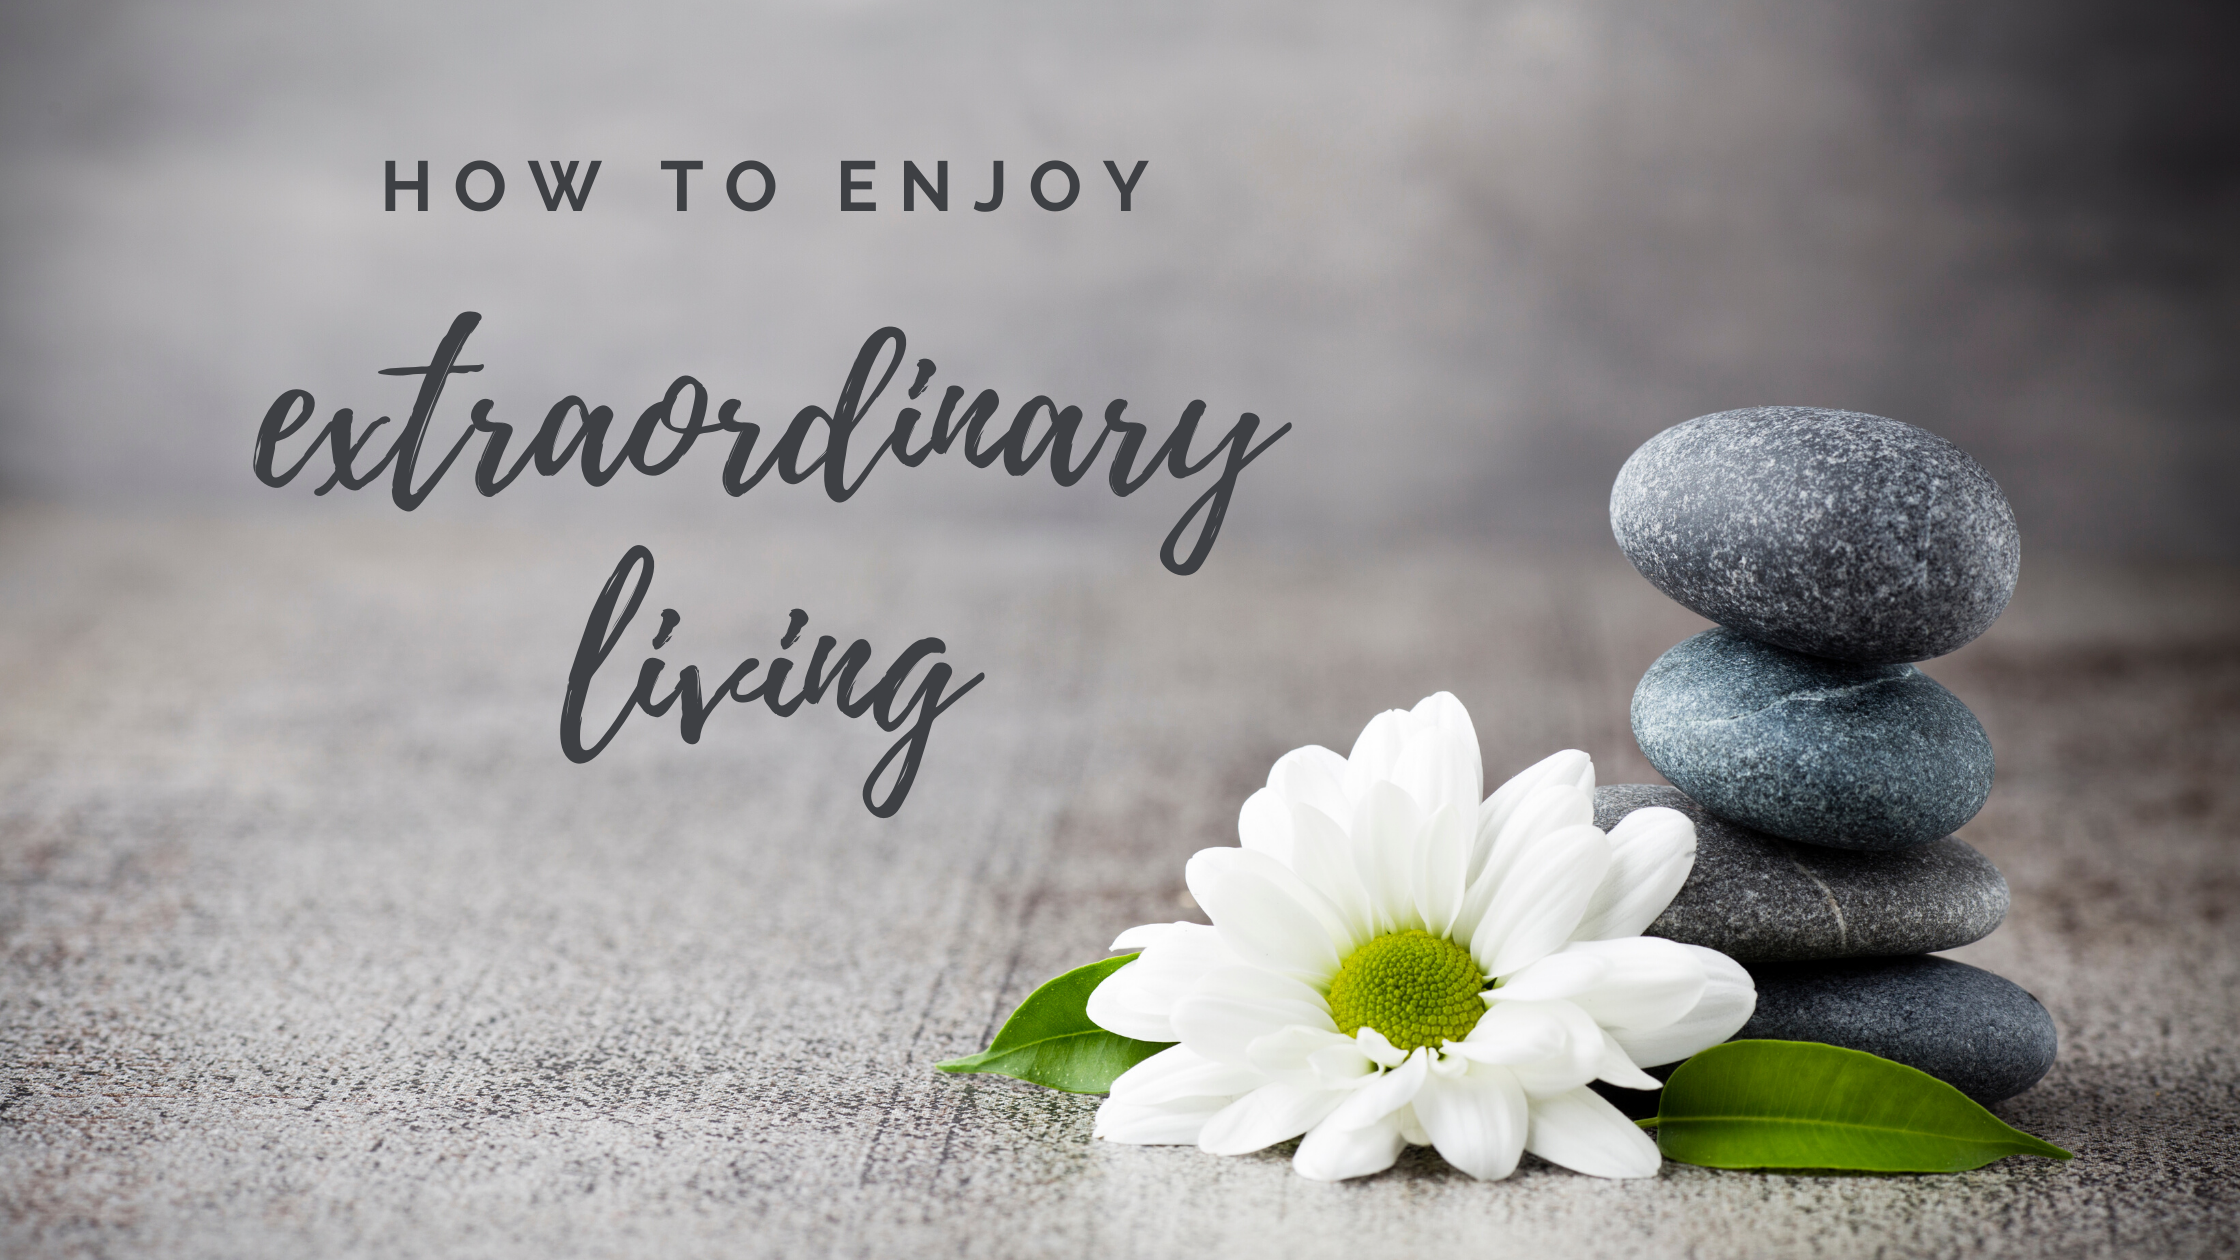 how_to_enjoy_extraordinary_living